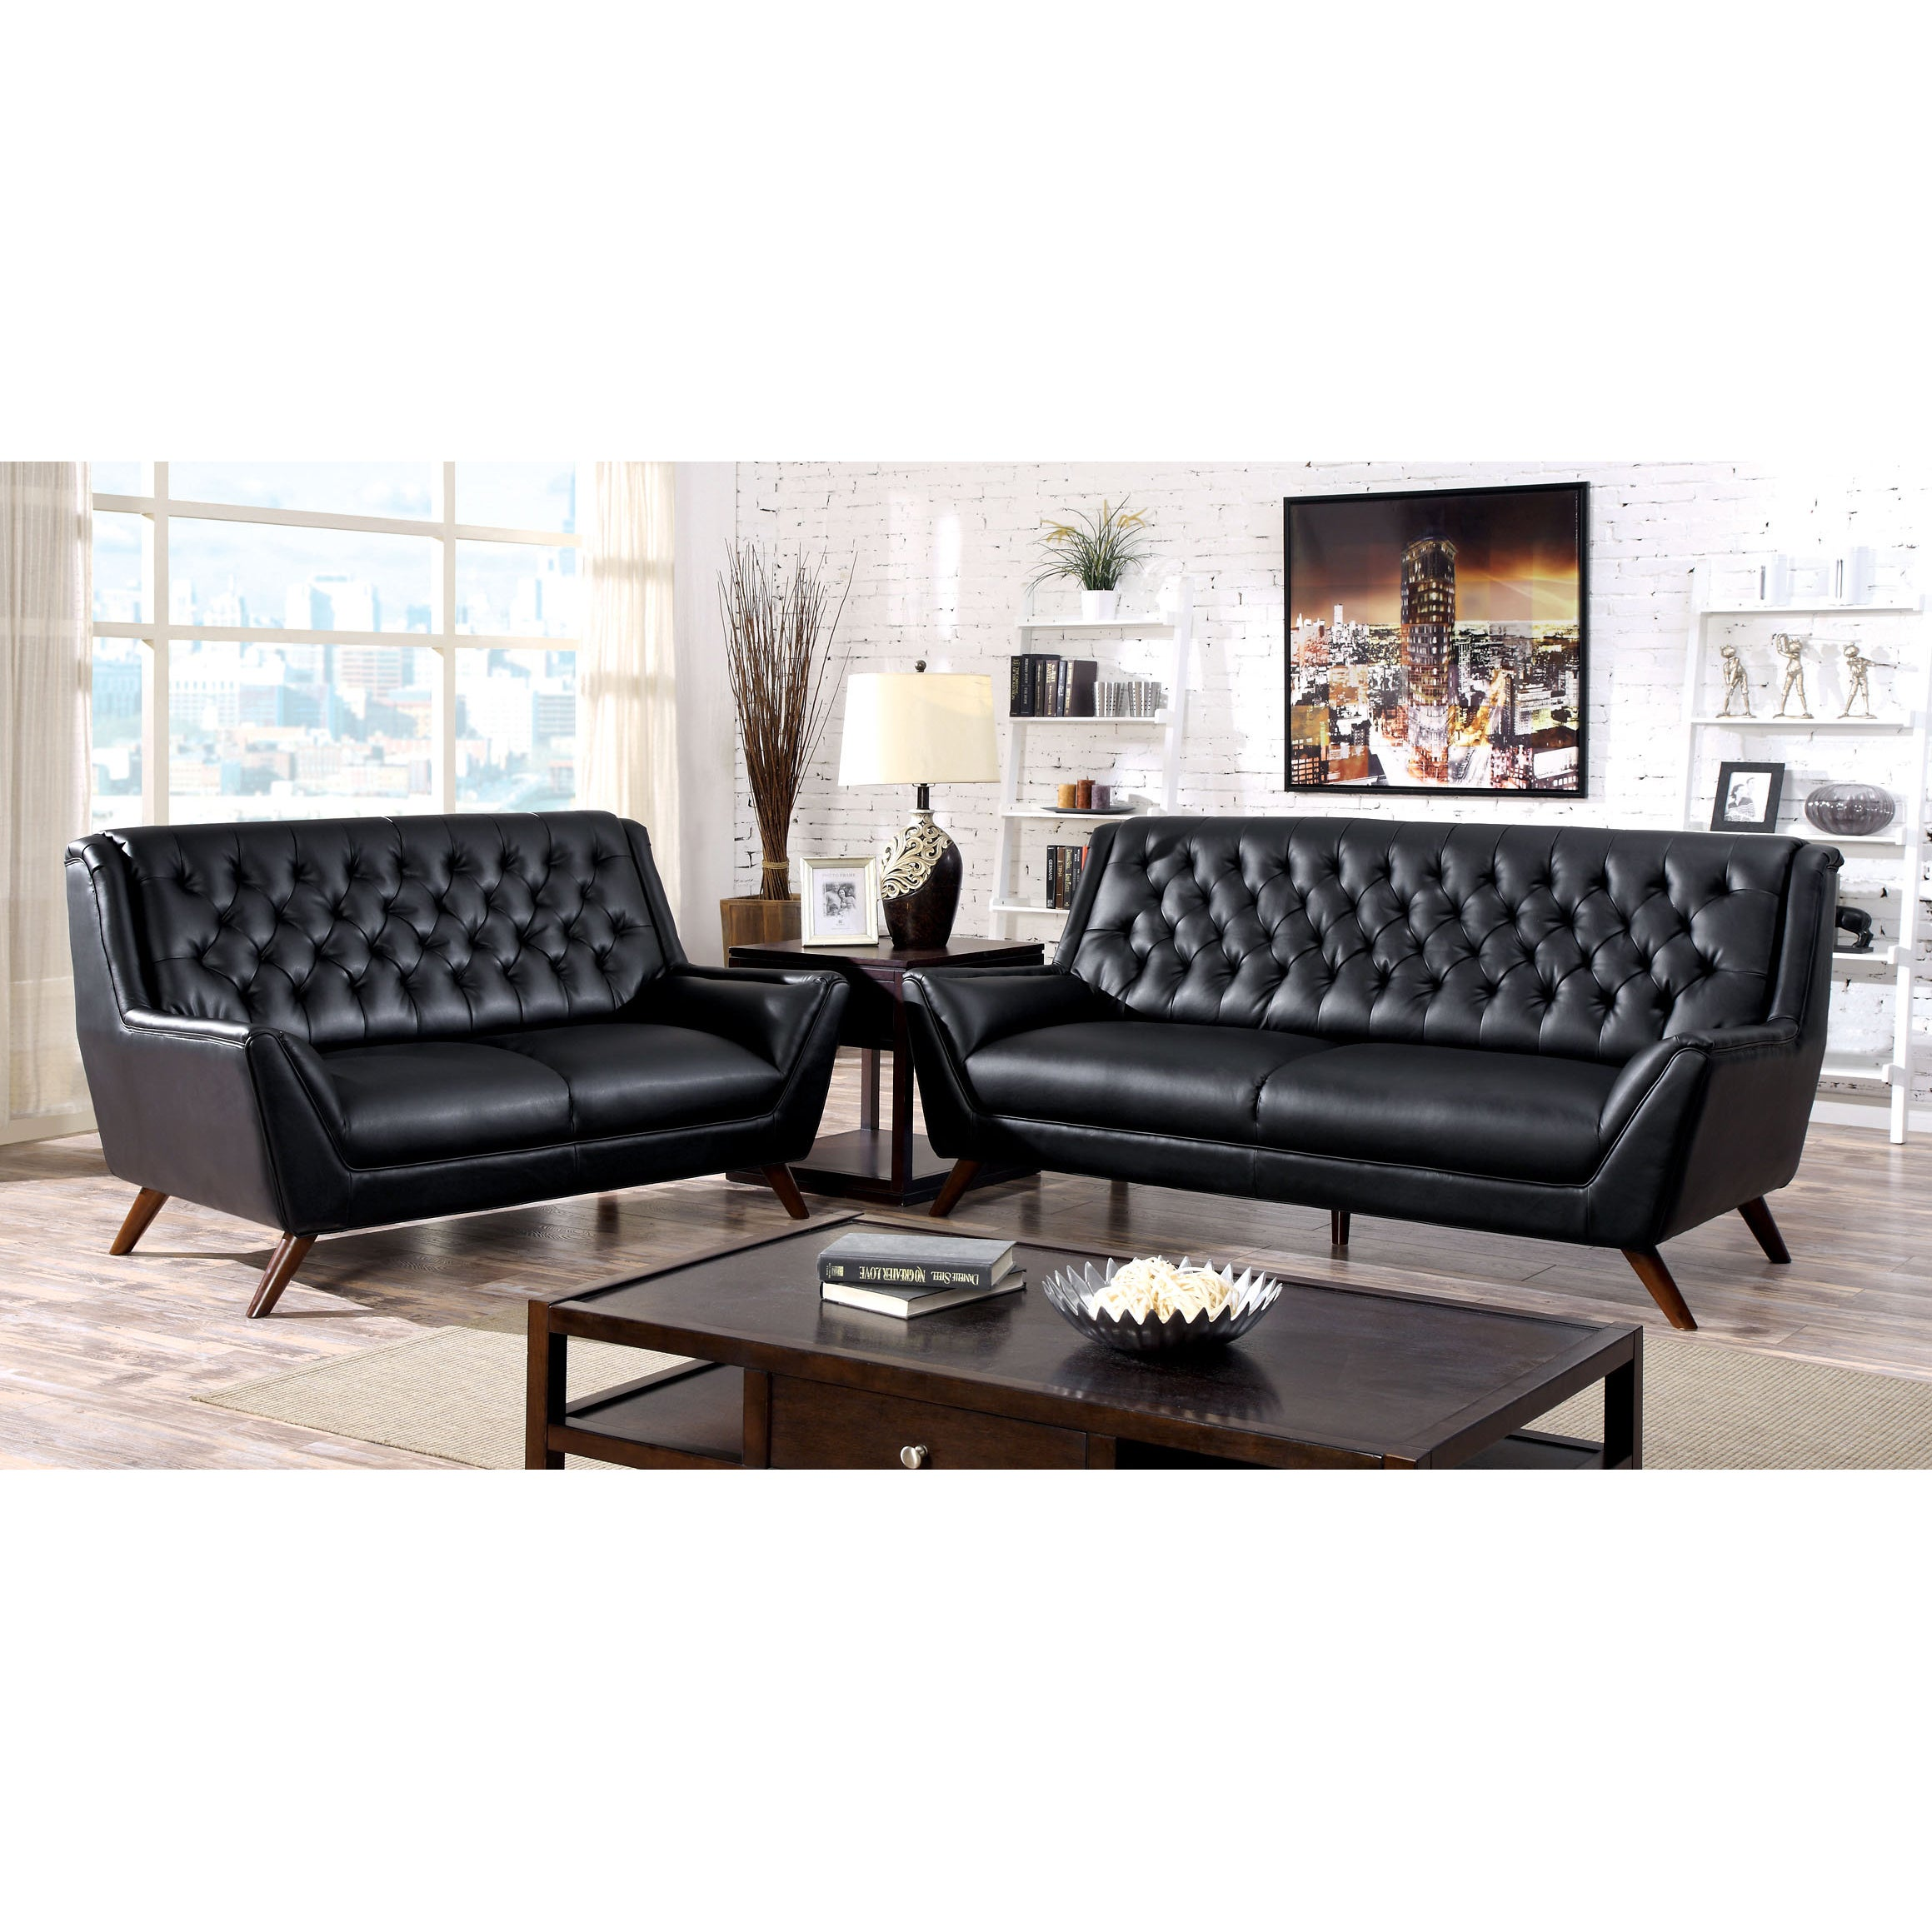 Black Sets Sofas Couches & Loveseats For Less